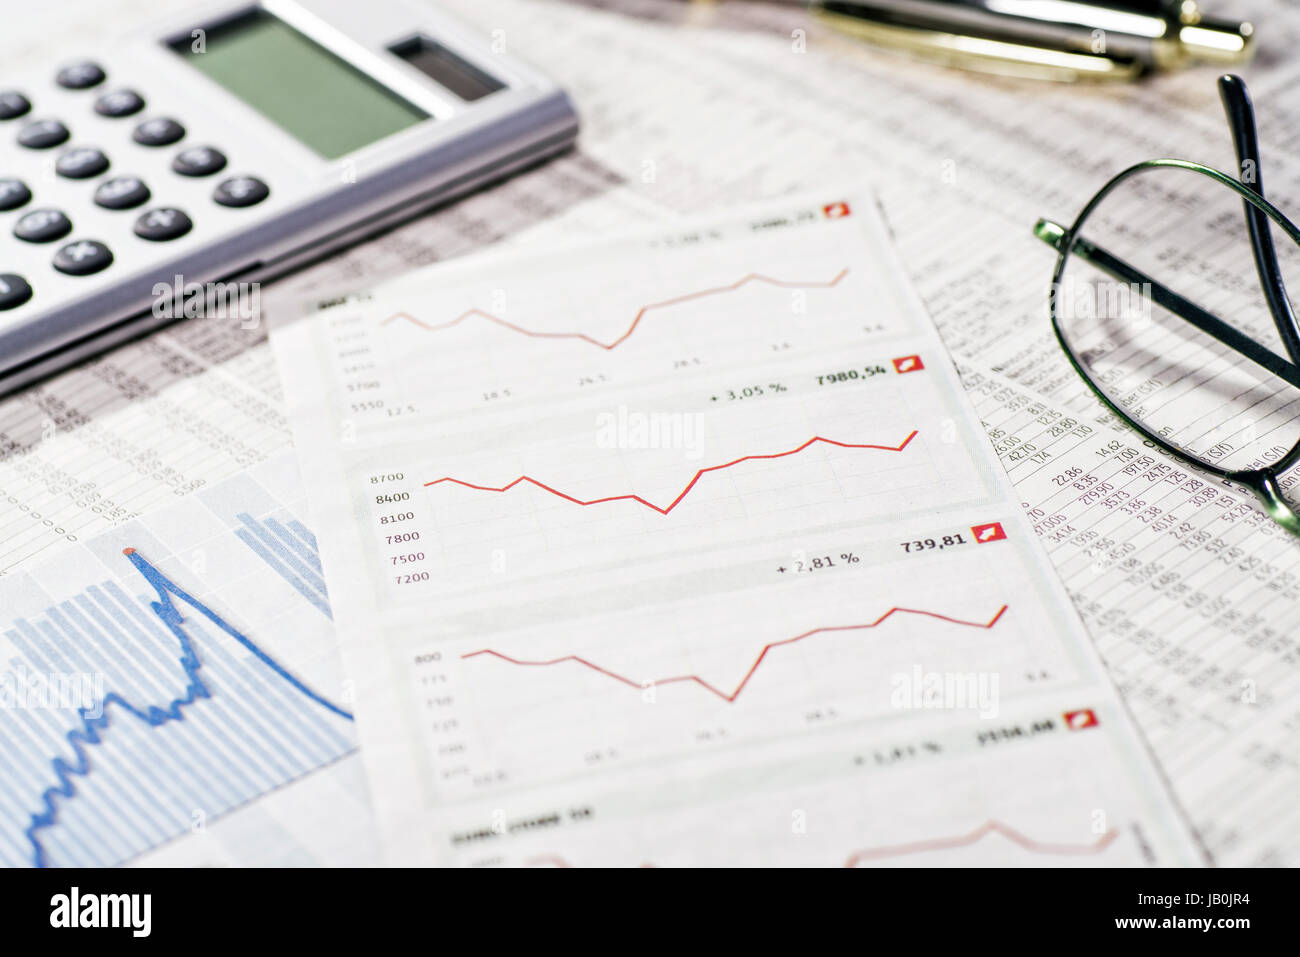 Charts, rate tables and calculator as a symbol of the development of the financial market. - Stock Image